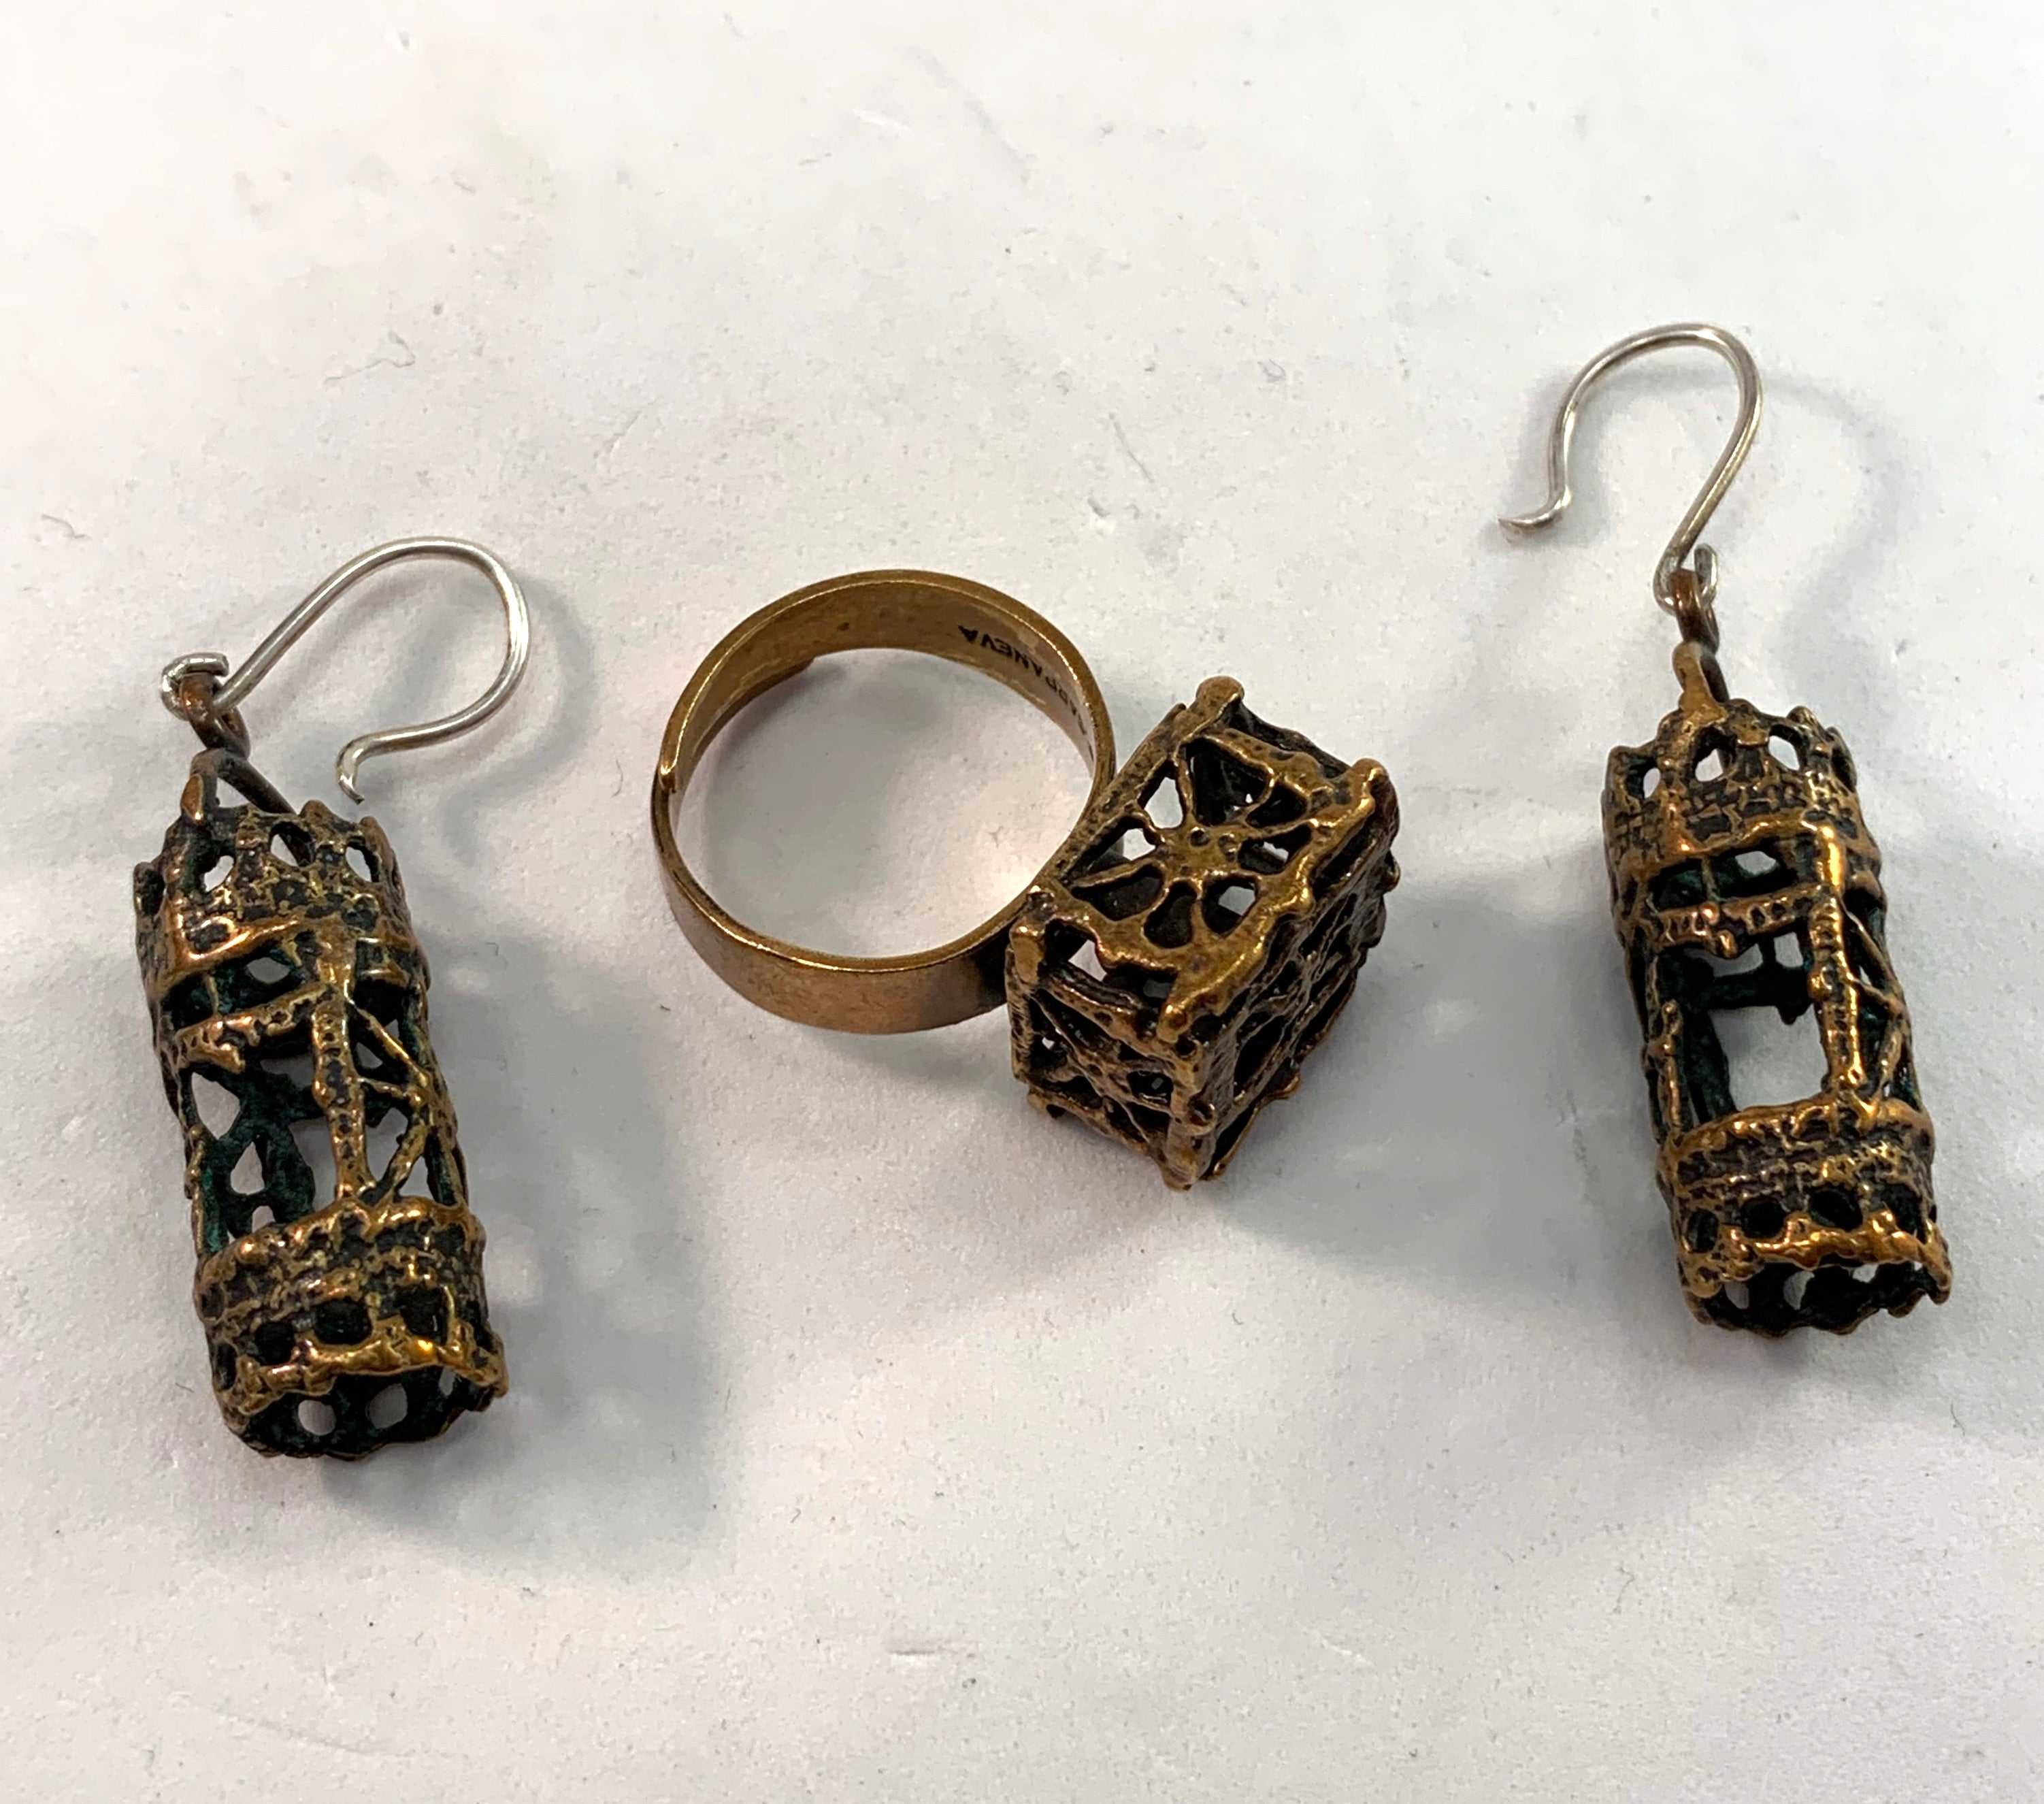 Pentti Sarpaneva Finland 1960-70s Bronze Earrings ring